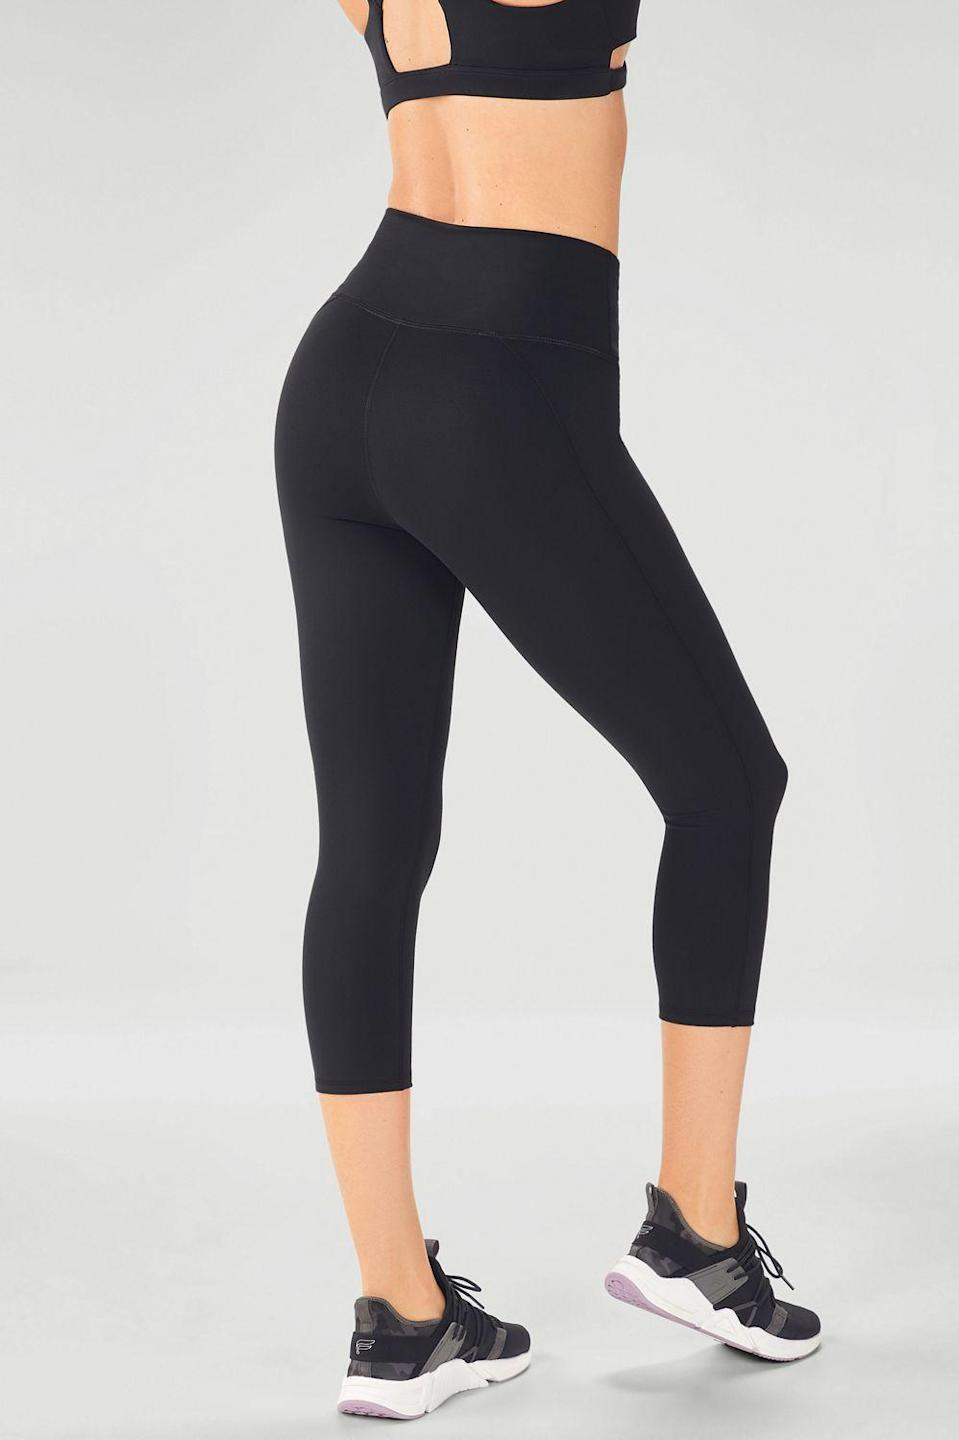 """<h3><h2>Fabletics High-Waisted PowerHold 7/8</h2></h3><br><strong><em>Overall Score: 4.45</em></strong><em><br></em><br><strong>Stretch: 4.5</strong><br>Disclaimer: The """"workout"""" I tried out my Fabletics leggings in was actually moving all of my belongings and furniture back into my room after redoing the floors. Still, I'd count that as a form of exercise! I love a super tight legging (nothing bothers me more than having to pull up the waistband mid-workout) and the Fabletics ones I had on stayed put, even through all the pushing and pulling. There was still enough stretch to feel comfortable in them.<br><br><strong>Sweat wicking: 4.0</strong><br>I'll be honest — I worked up a little bit of a sweat moving the entirety of my belongings from one area of my house to the other. But, I still felt fresh and clean — or at least as much as I possibly could have been in that situation.<br><br><em>— Lizzy Gulino, Health & Wellness Writer</em><br><br><strong>Fabletics</strong> High-Waisted PowerHold® 7/8, $, available at <a href=""""https://go.skimresources.com/?id=30283X879131&url=https%3A%2F%2Fwww.fabletics.com%2Fproducts%2FHIGH-WAISTED-POWERHOLD-7-8-CS1719629-0001"""" rel=""""nofollow noopener"""" target=""""_blank"""" data-ylk=""""slk:Fabletics"""" class=""""link rapid-noclick-resp"""">Fabletics</a>"""